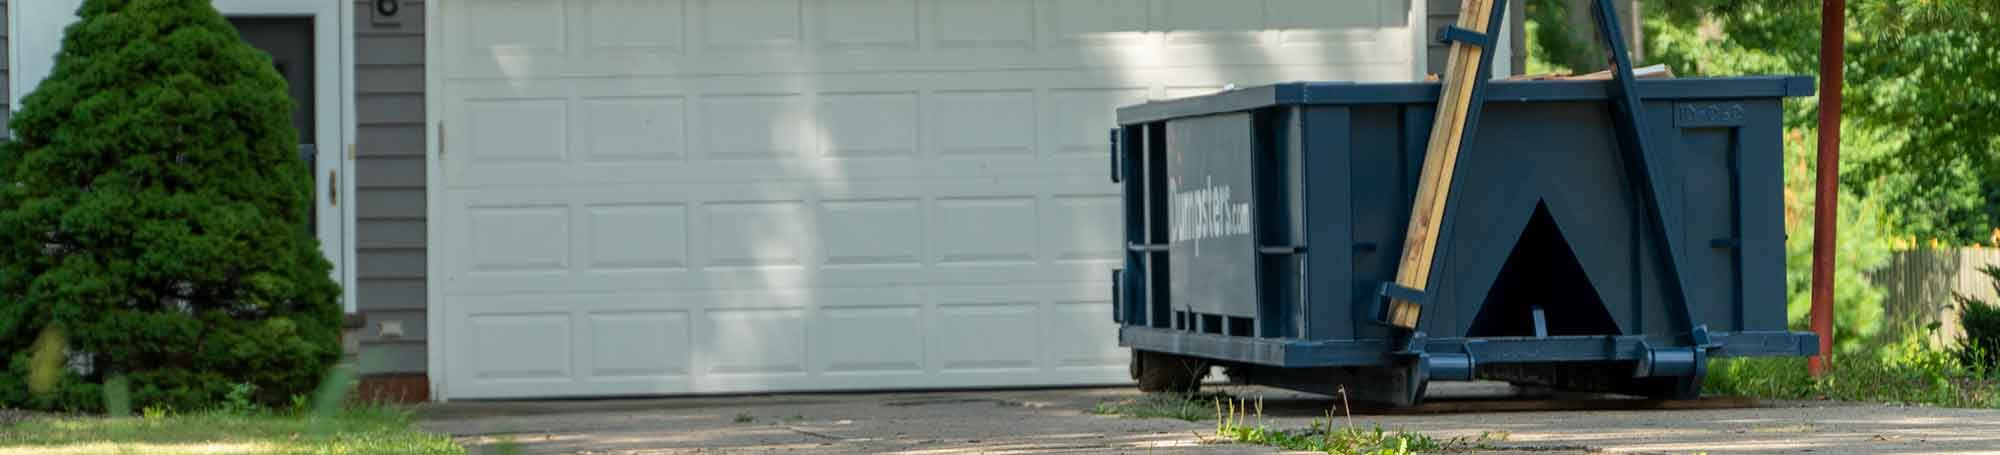 Blue Roll Off Dumpster in a Driveway in Front of a Closed White Garage Door.